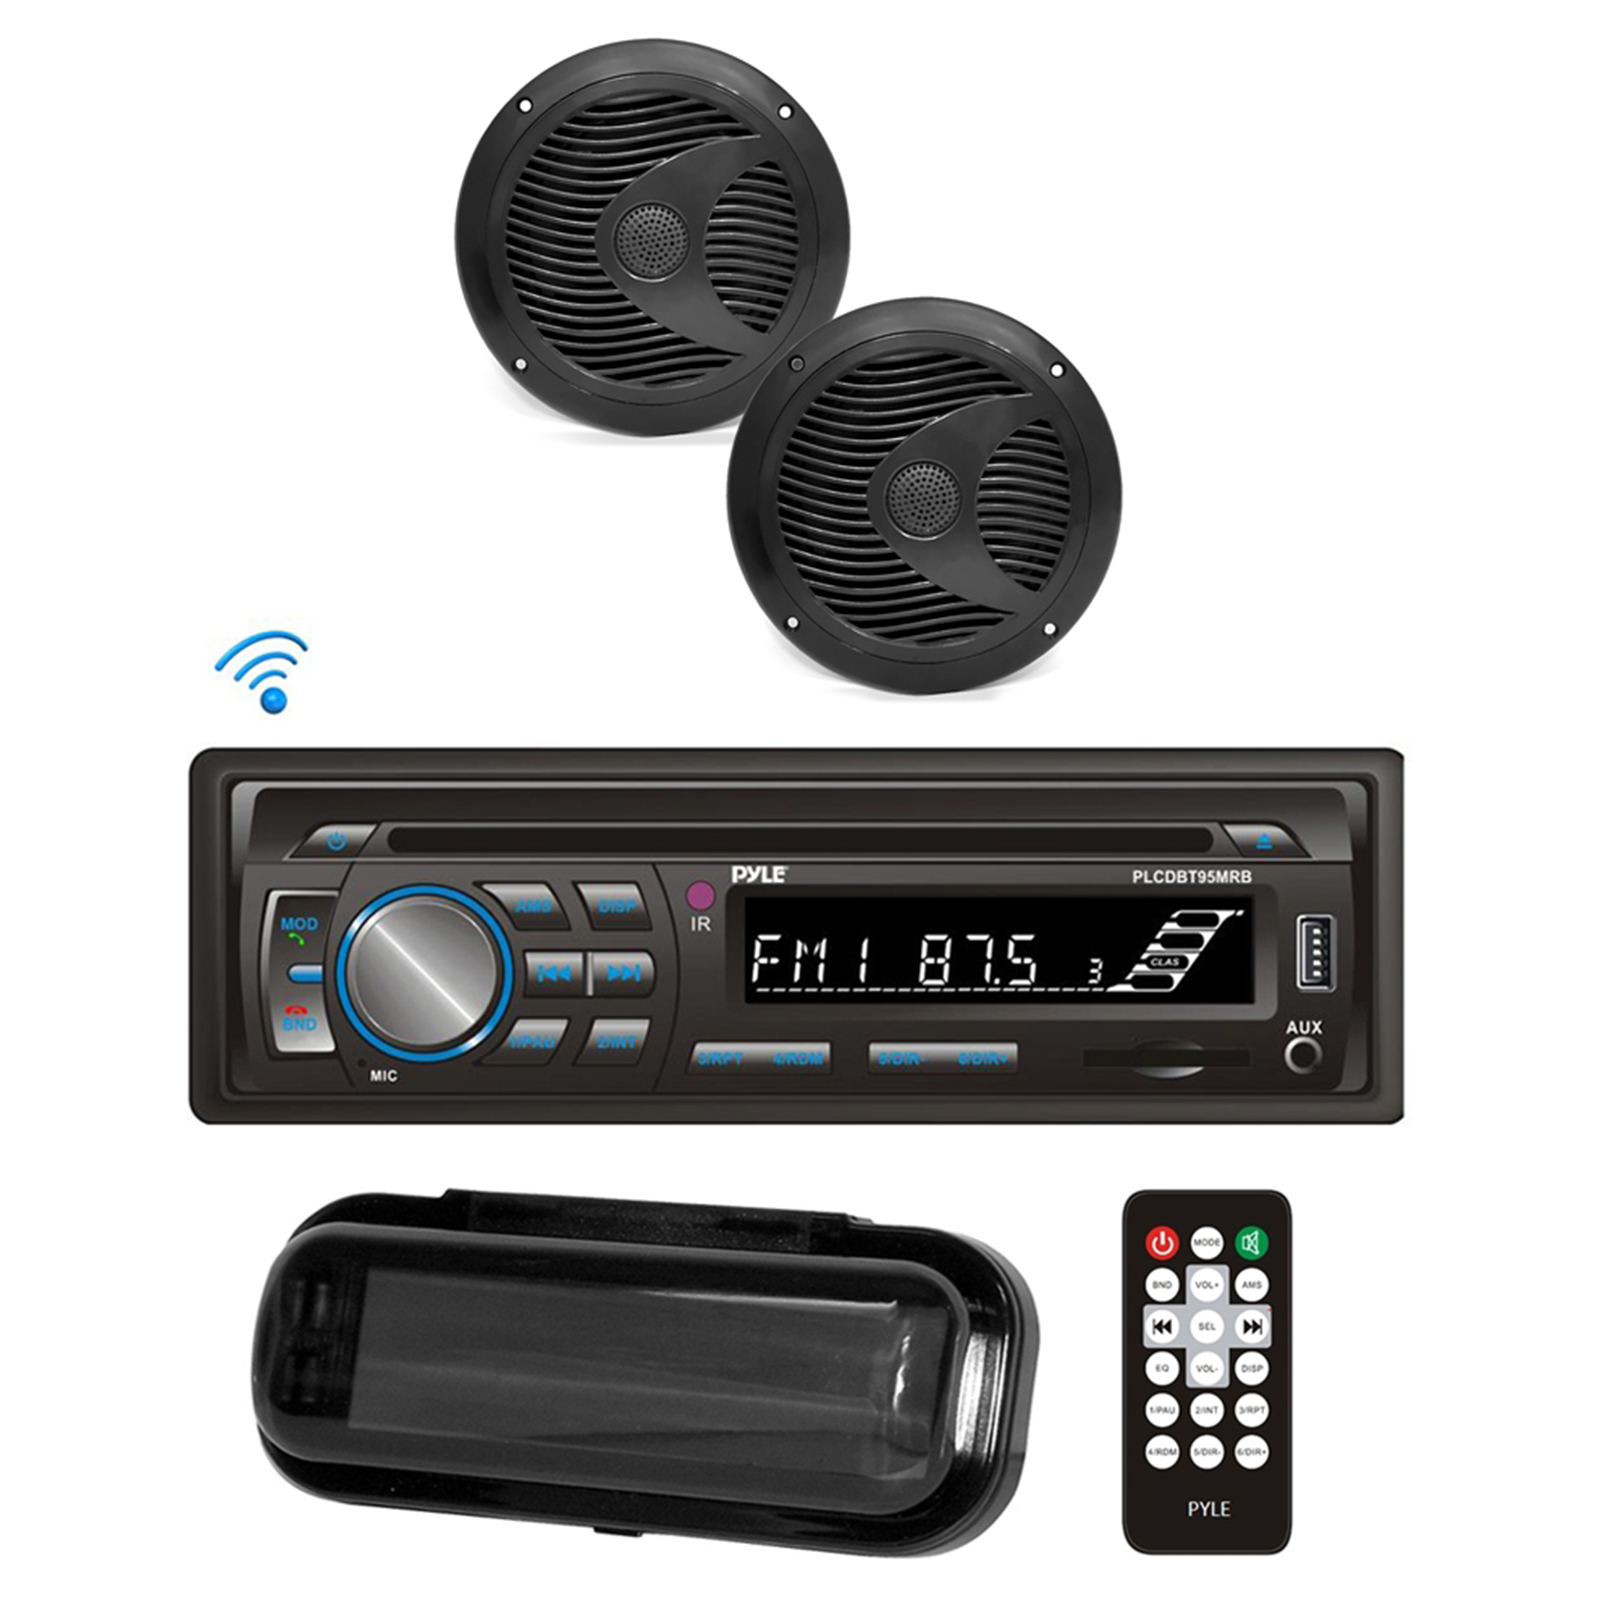 "BT Marine Stereo Radio Receiver & Waterproof Speaker Kit, Hands-Free Talking, CD Player, MP3/USB/SD Readers, AM/FM Radio, (2) 6.5"" Speakers"